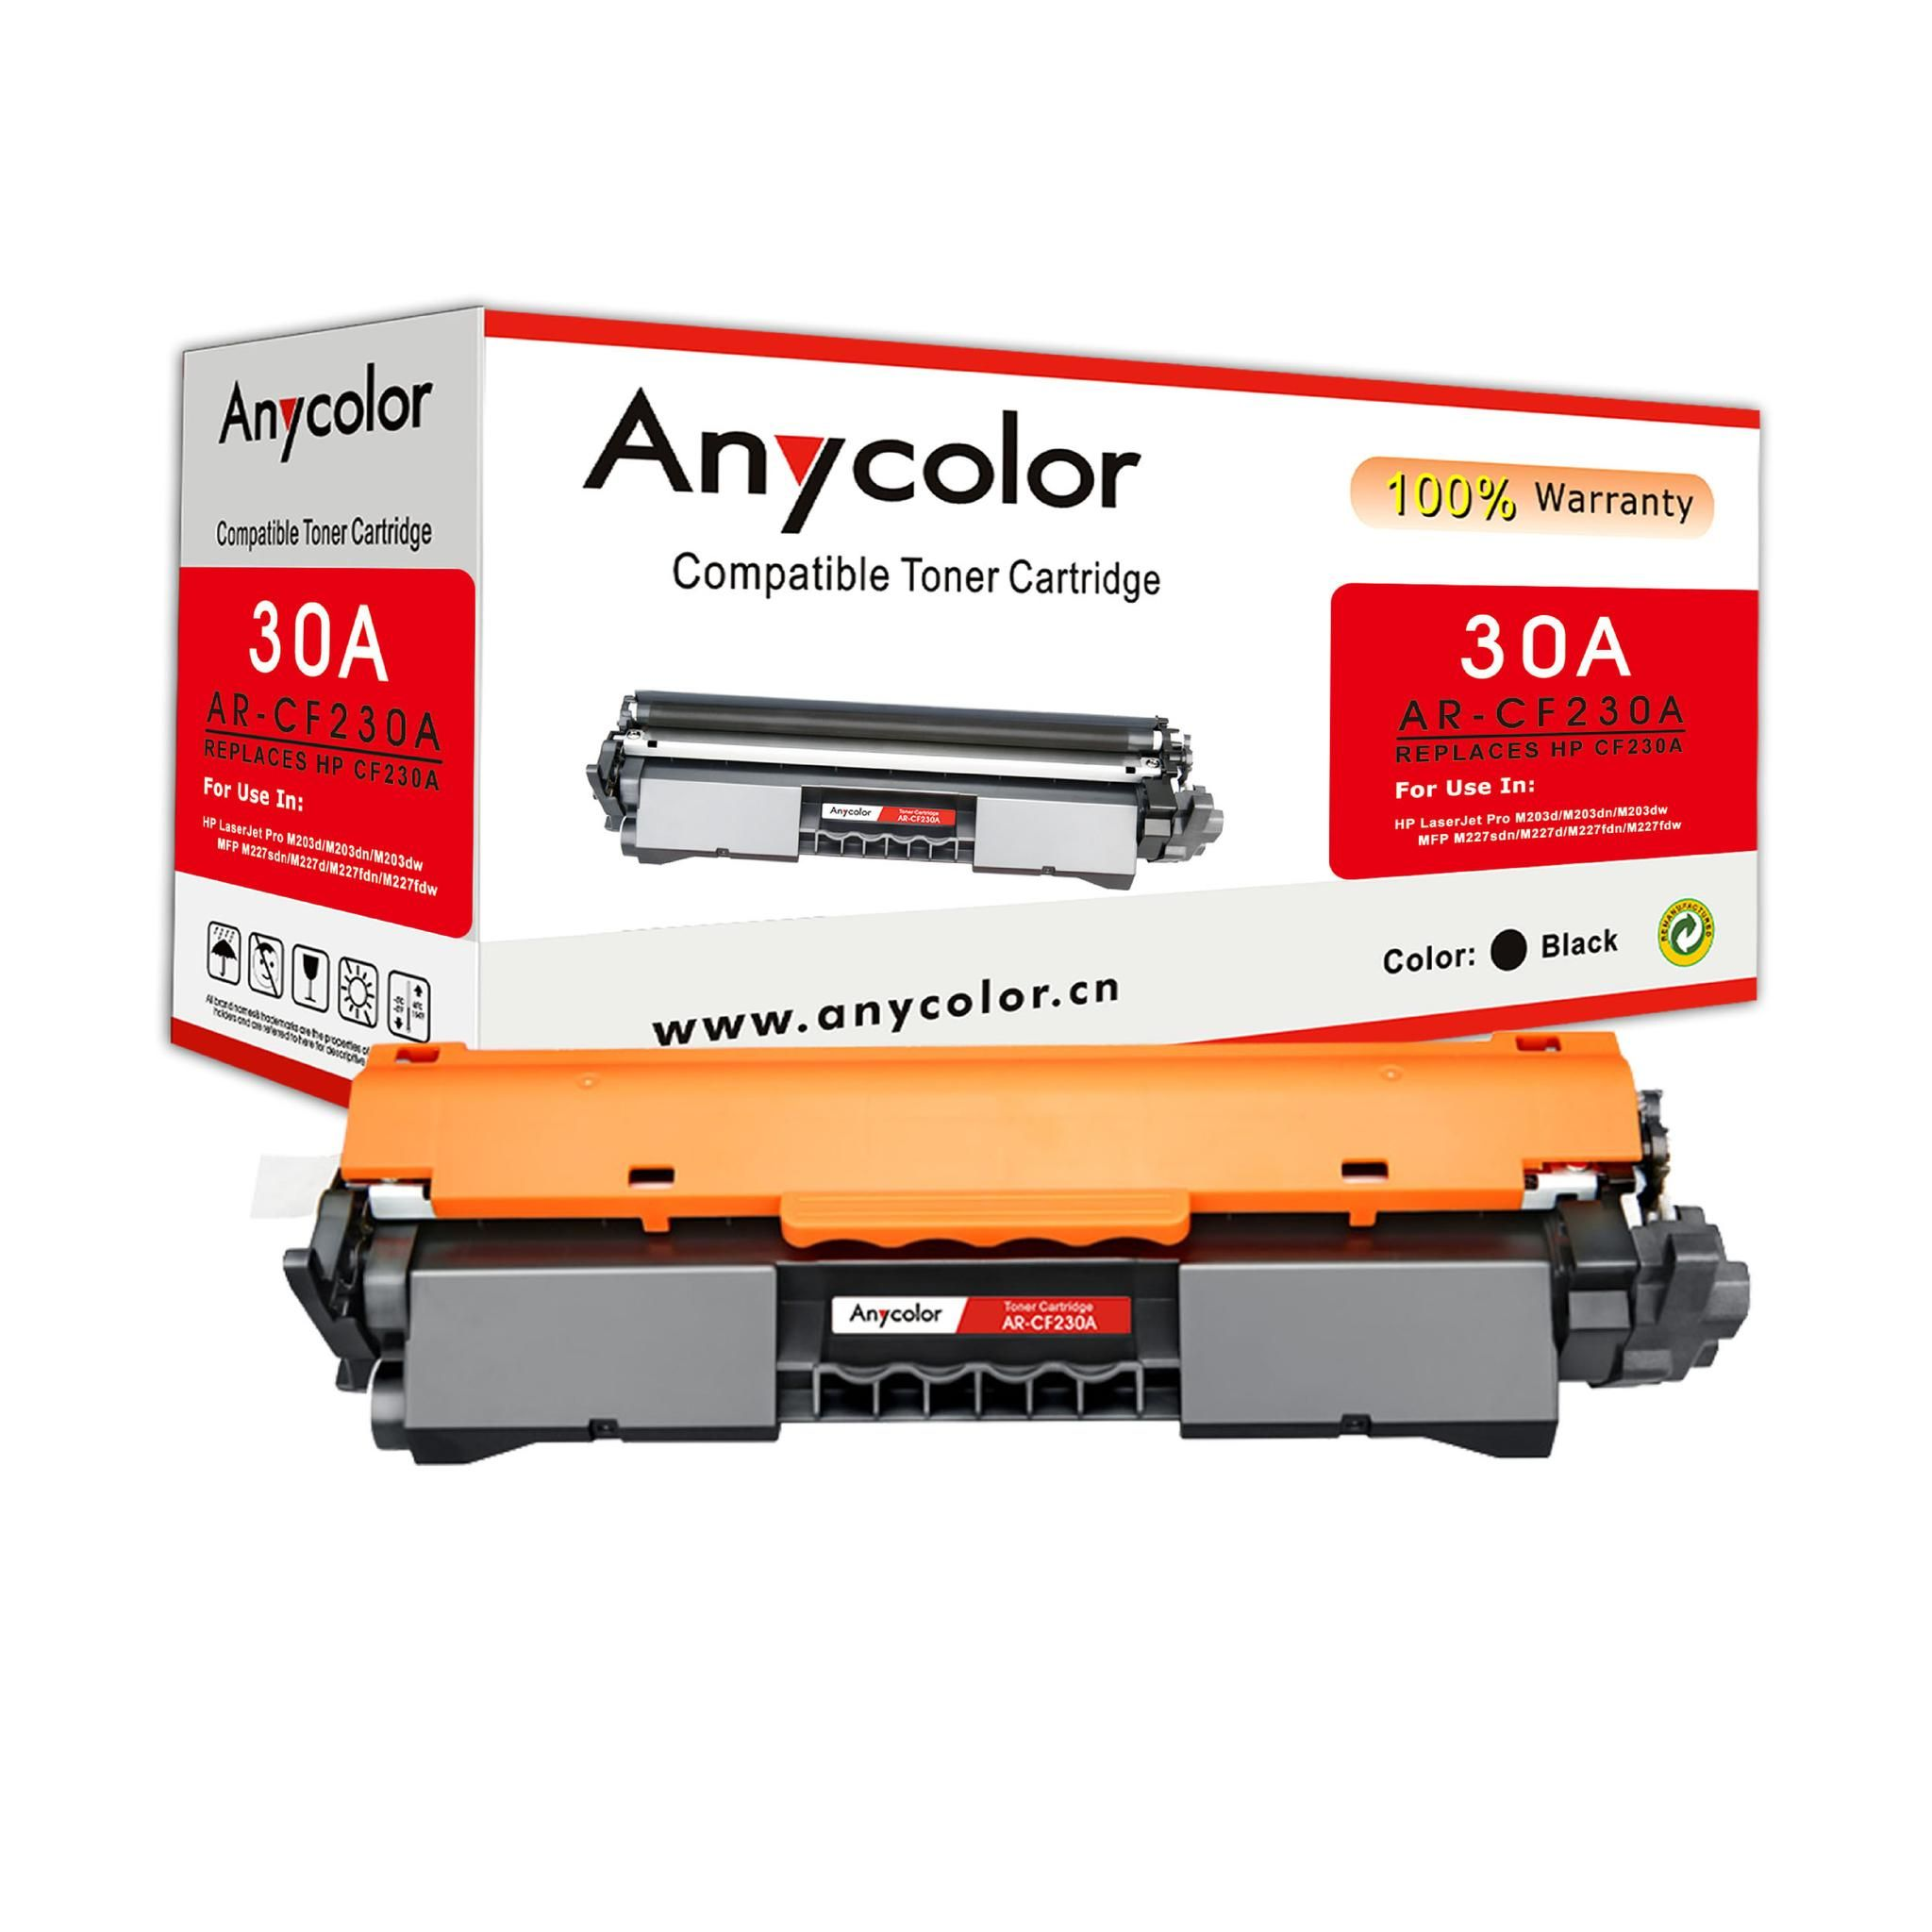 Anycolor Computer Consumables Co., Ltd.